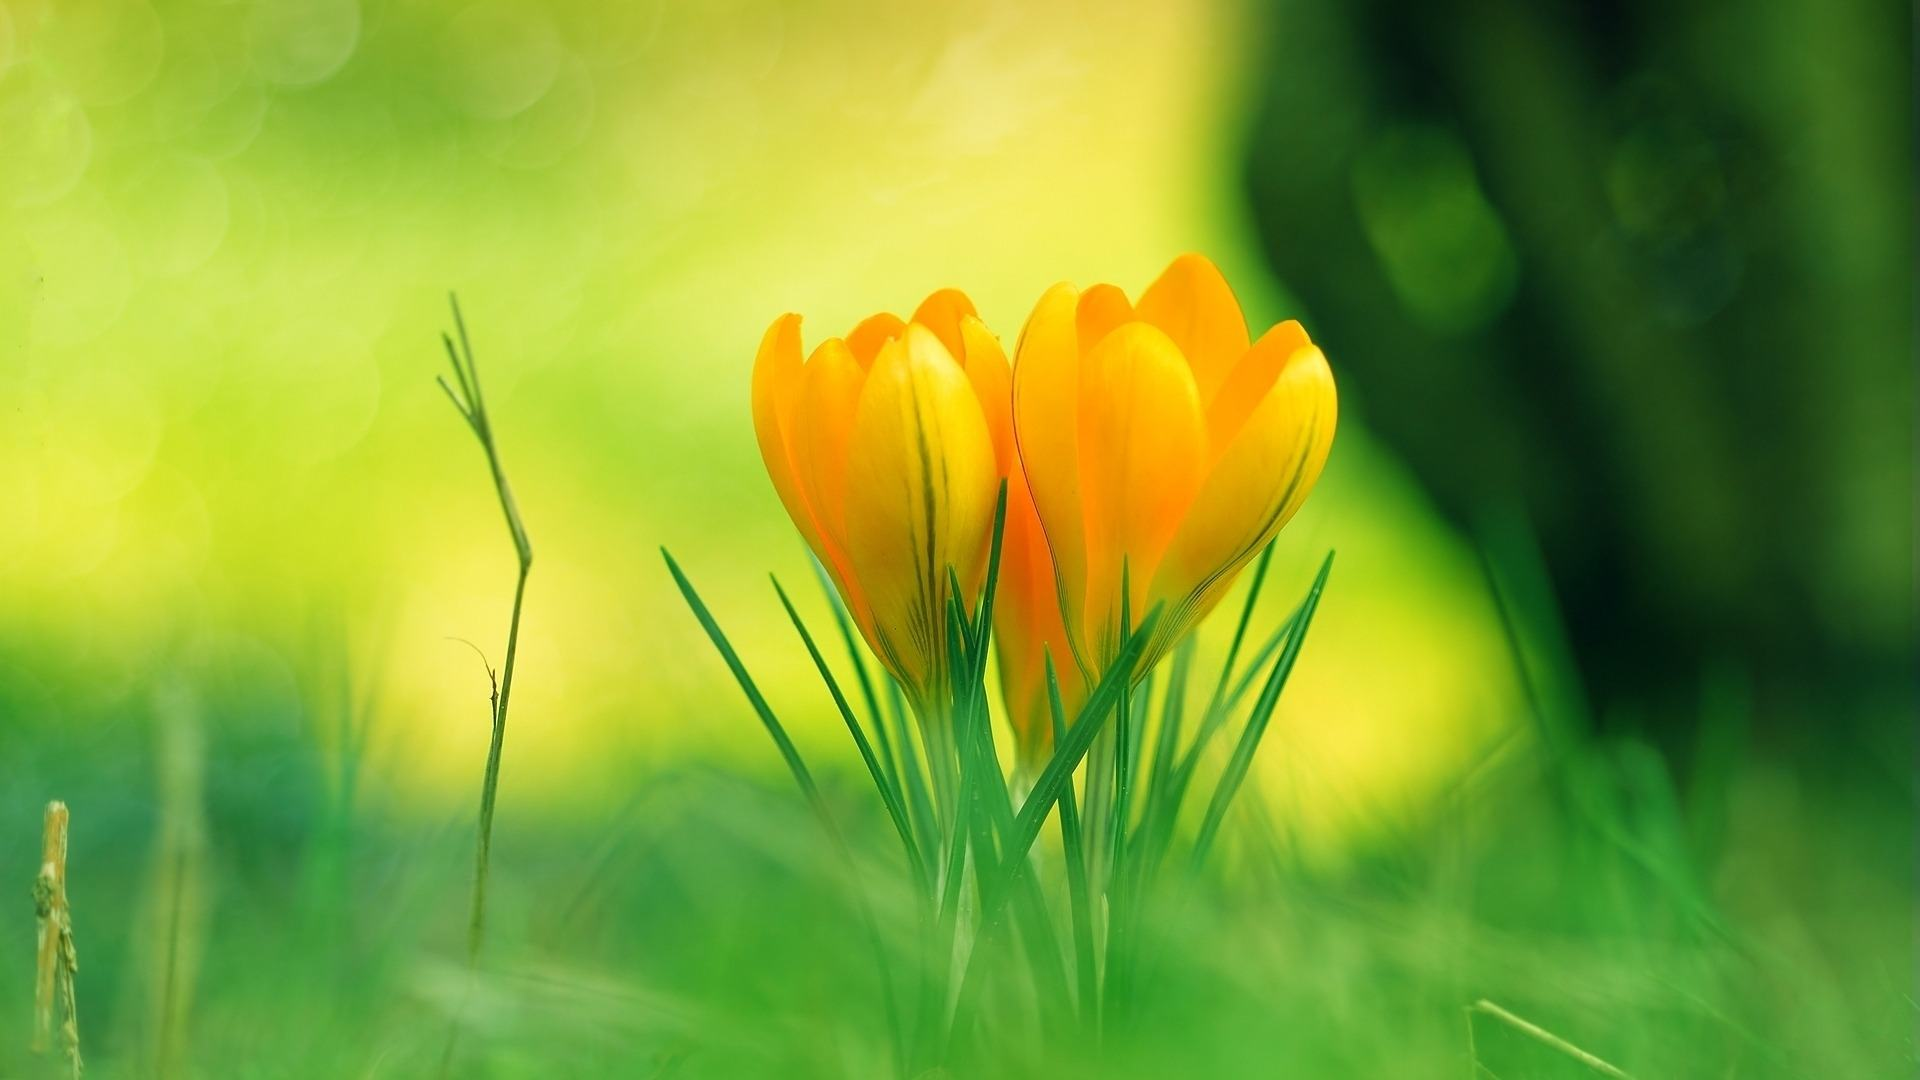 Wallpaper-flowers-baby-yellow-flower-wallpapers-images-617947